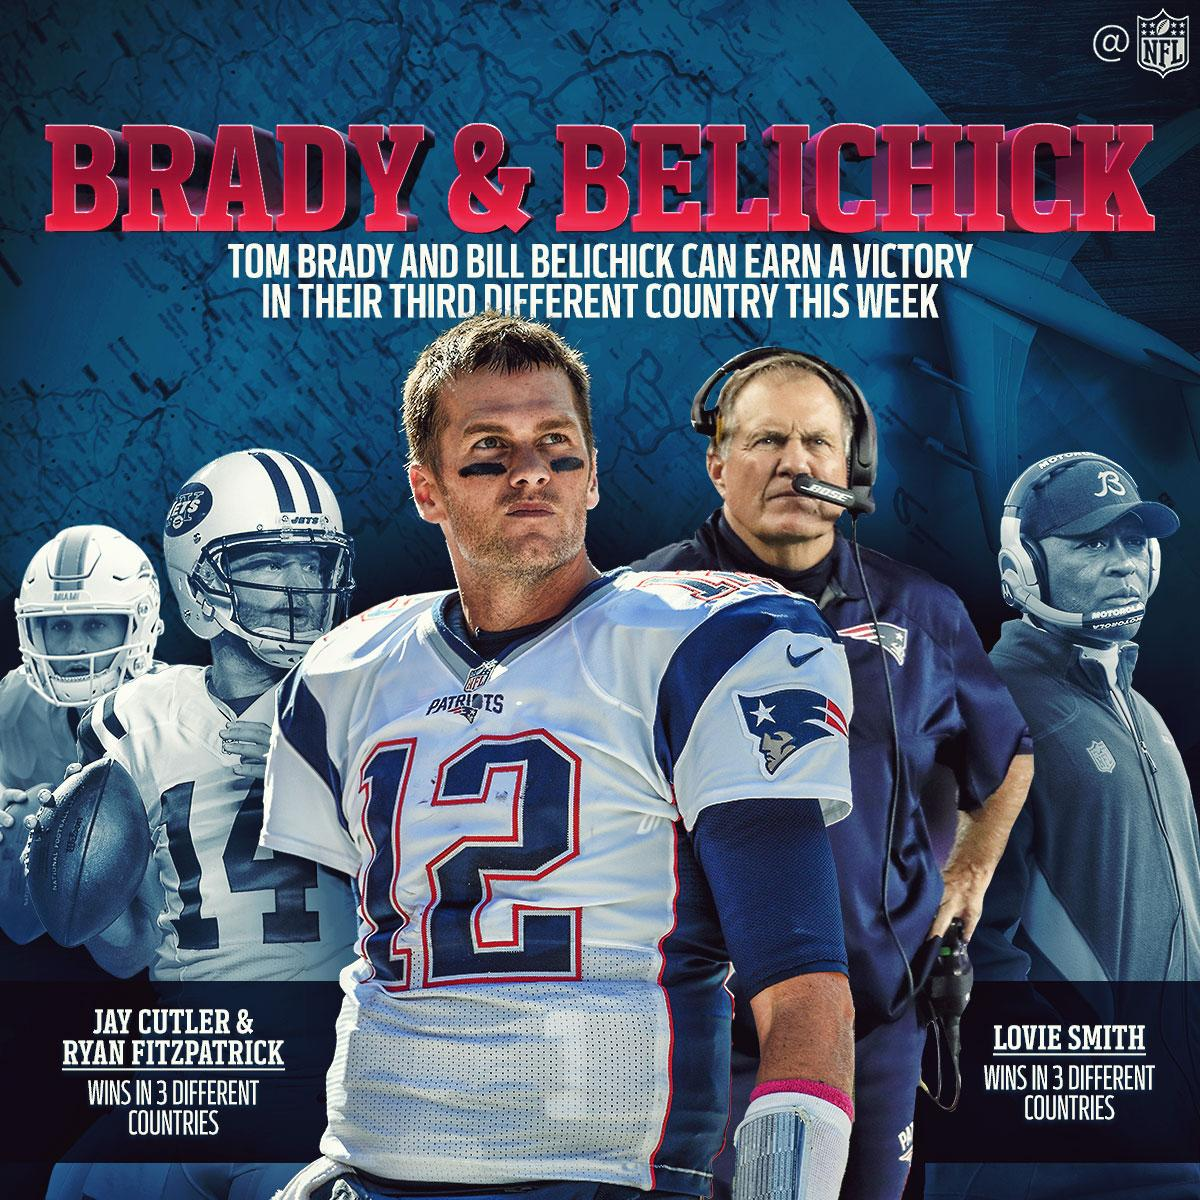 On any field. In any country.  Brady + Belichick are just plain dominant. #GoPats https://t.co/qB1qxeIu80